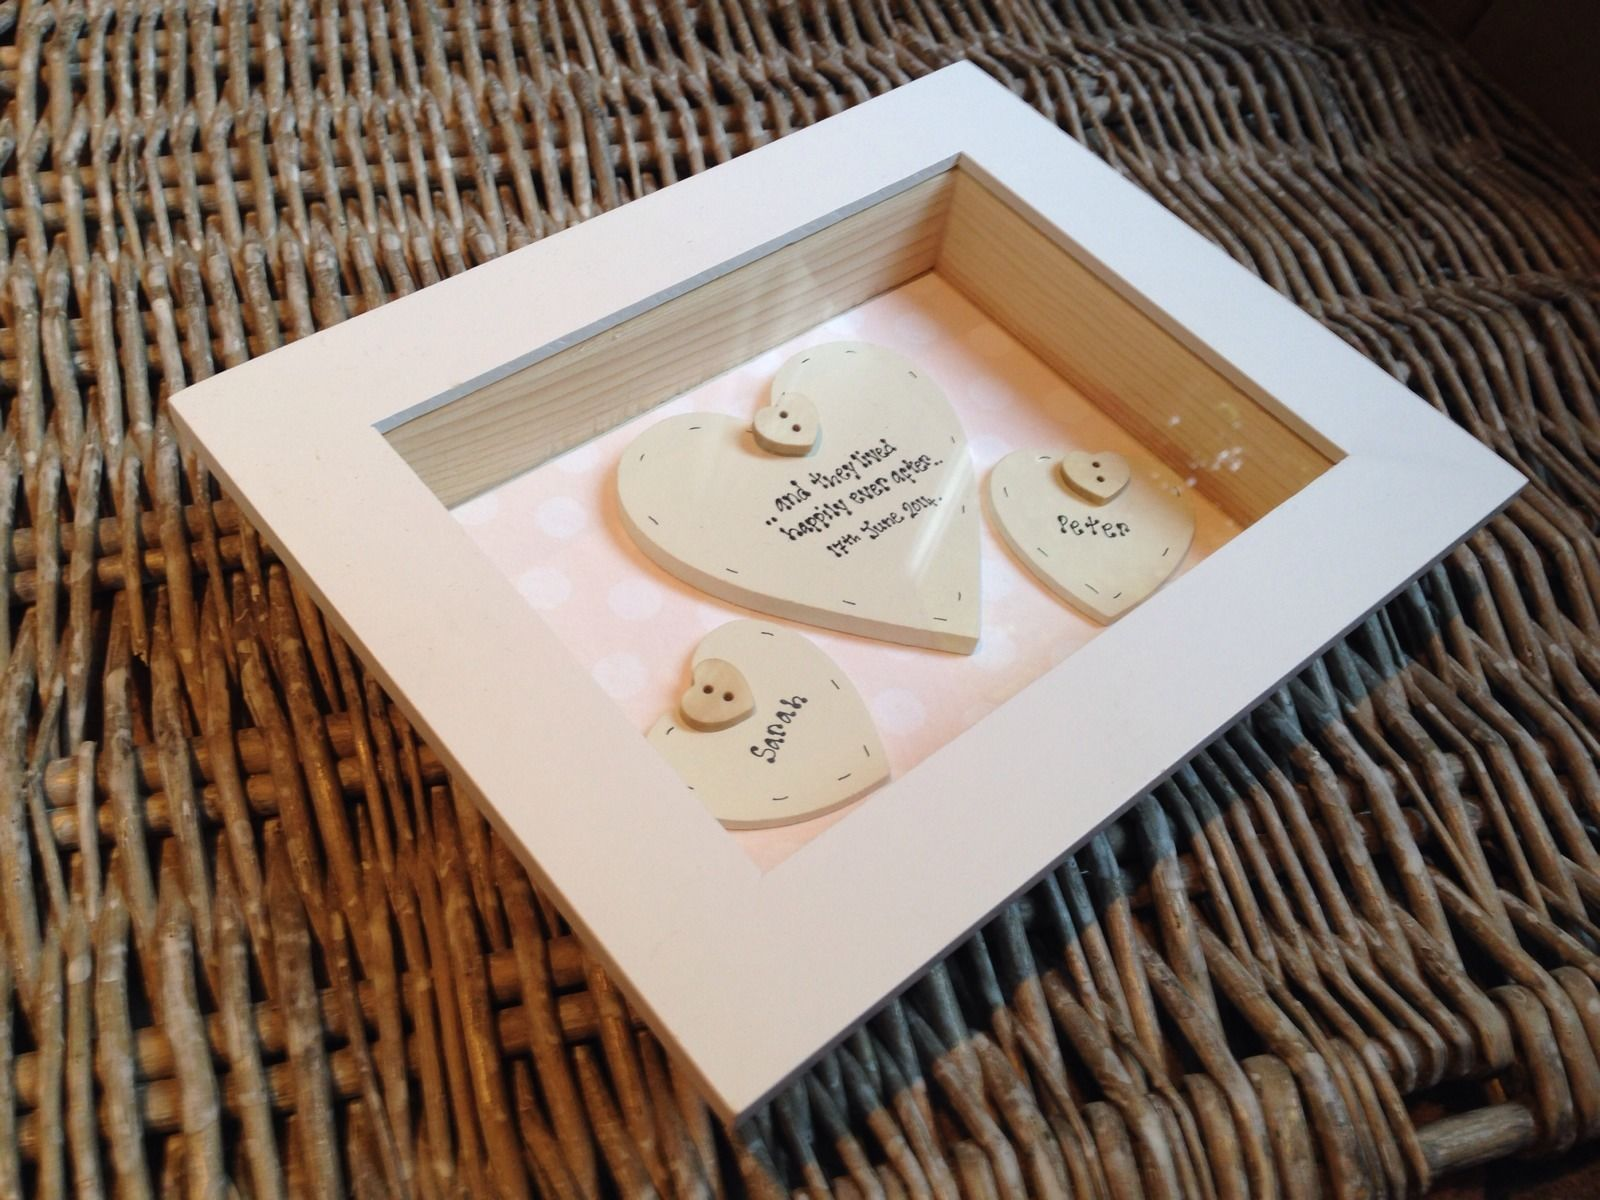 Shabby Personalised Chic Box Frame Gift For Bride Groom On Wedding